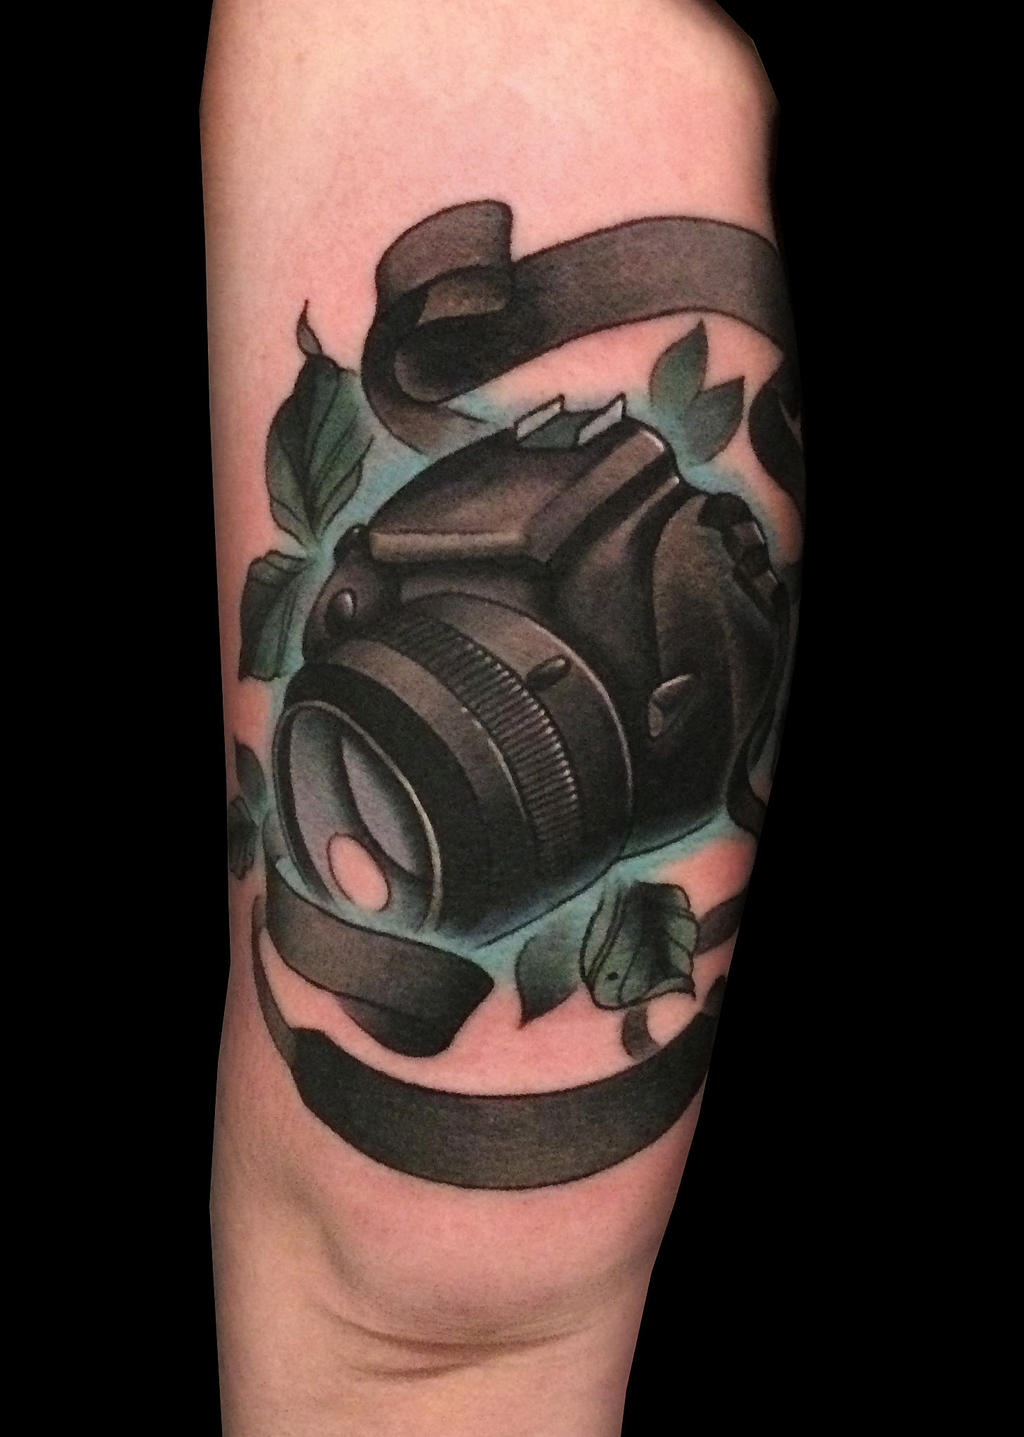 colorful arm tattoo canon camera design by nickthetailortattoo on deviantart. Black Bedroom Furniture Sets. Home Design Ideas